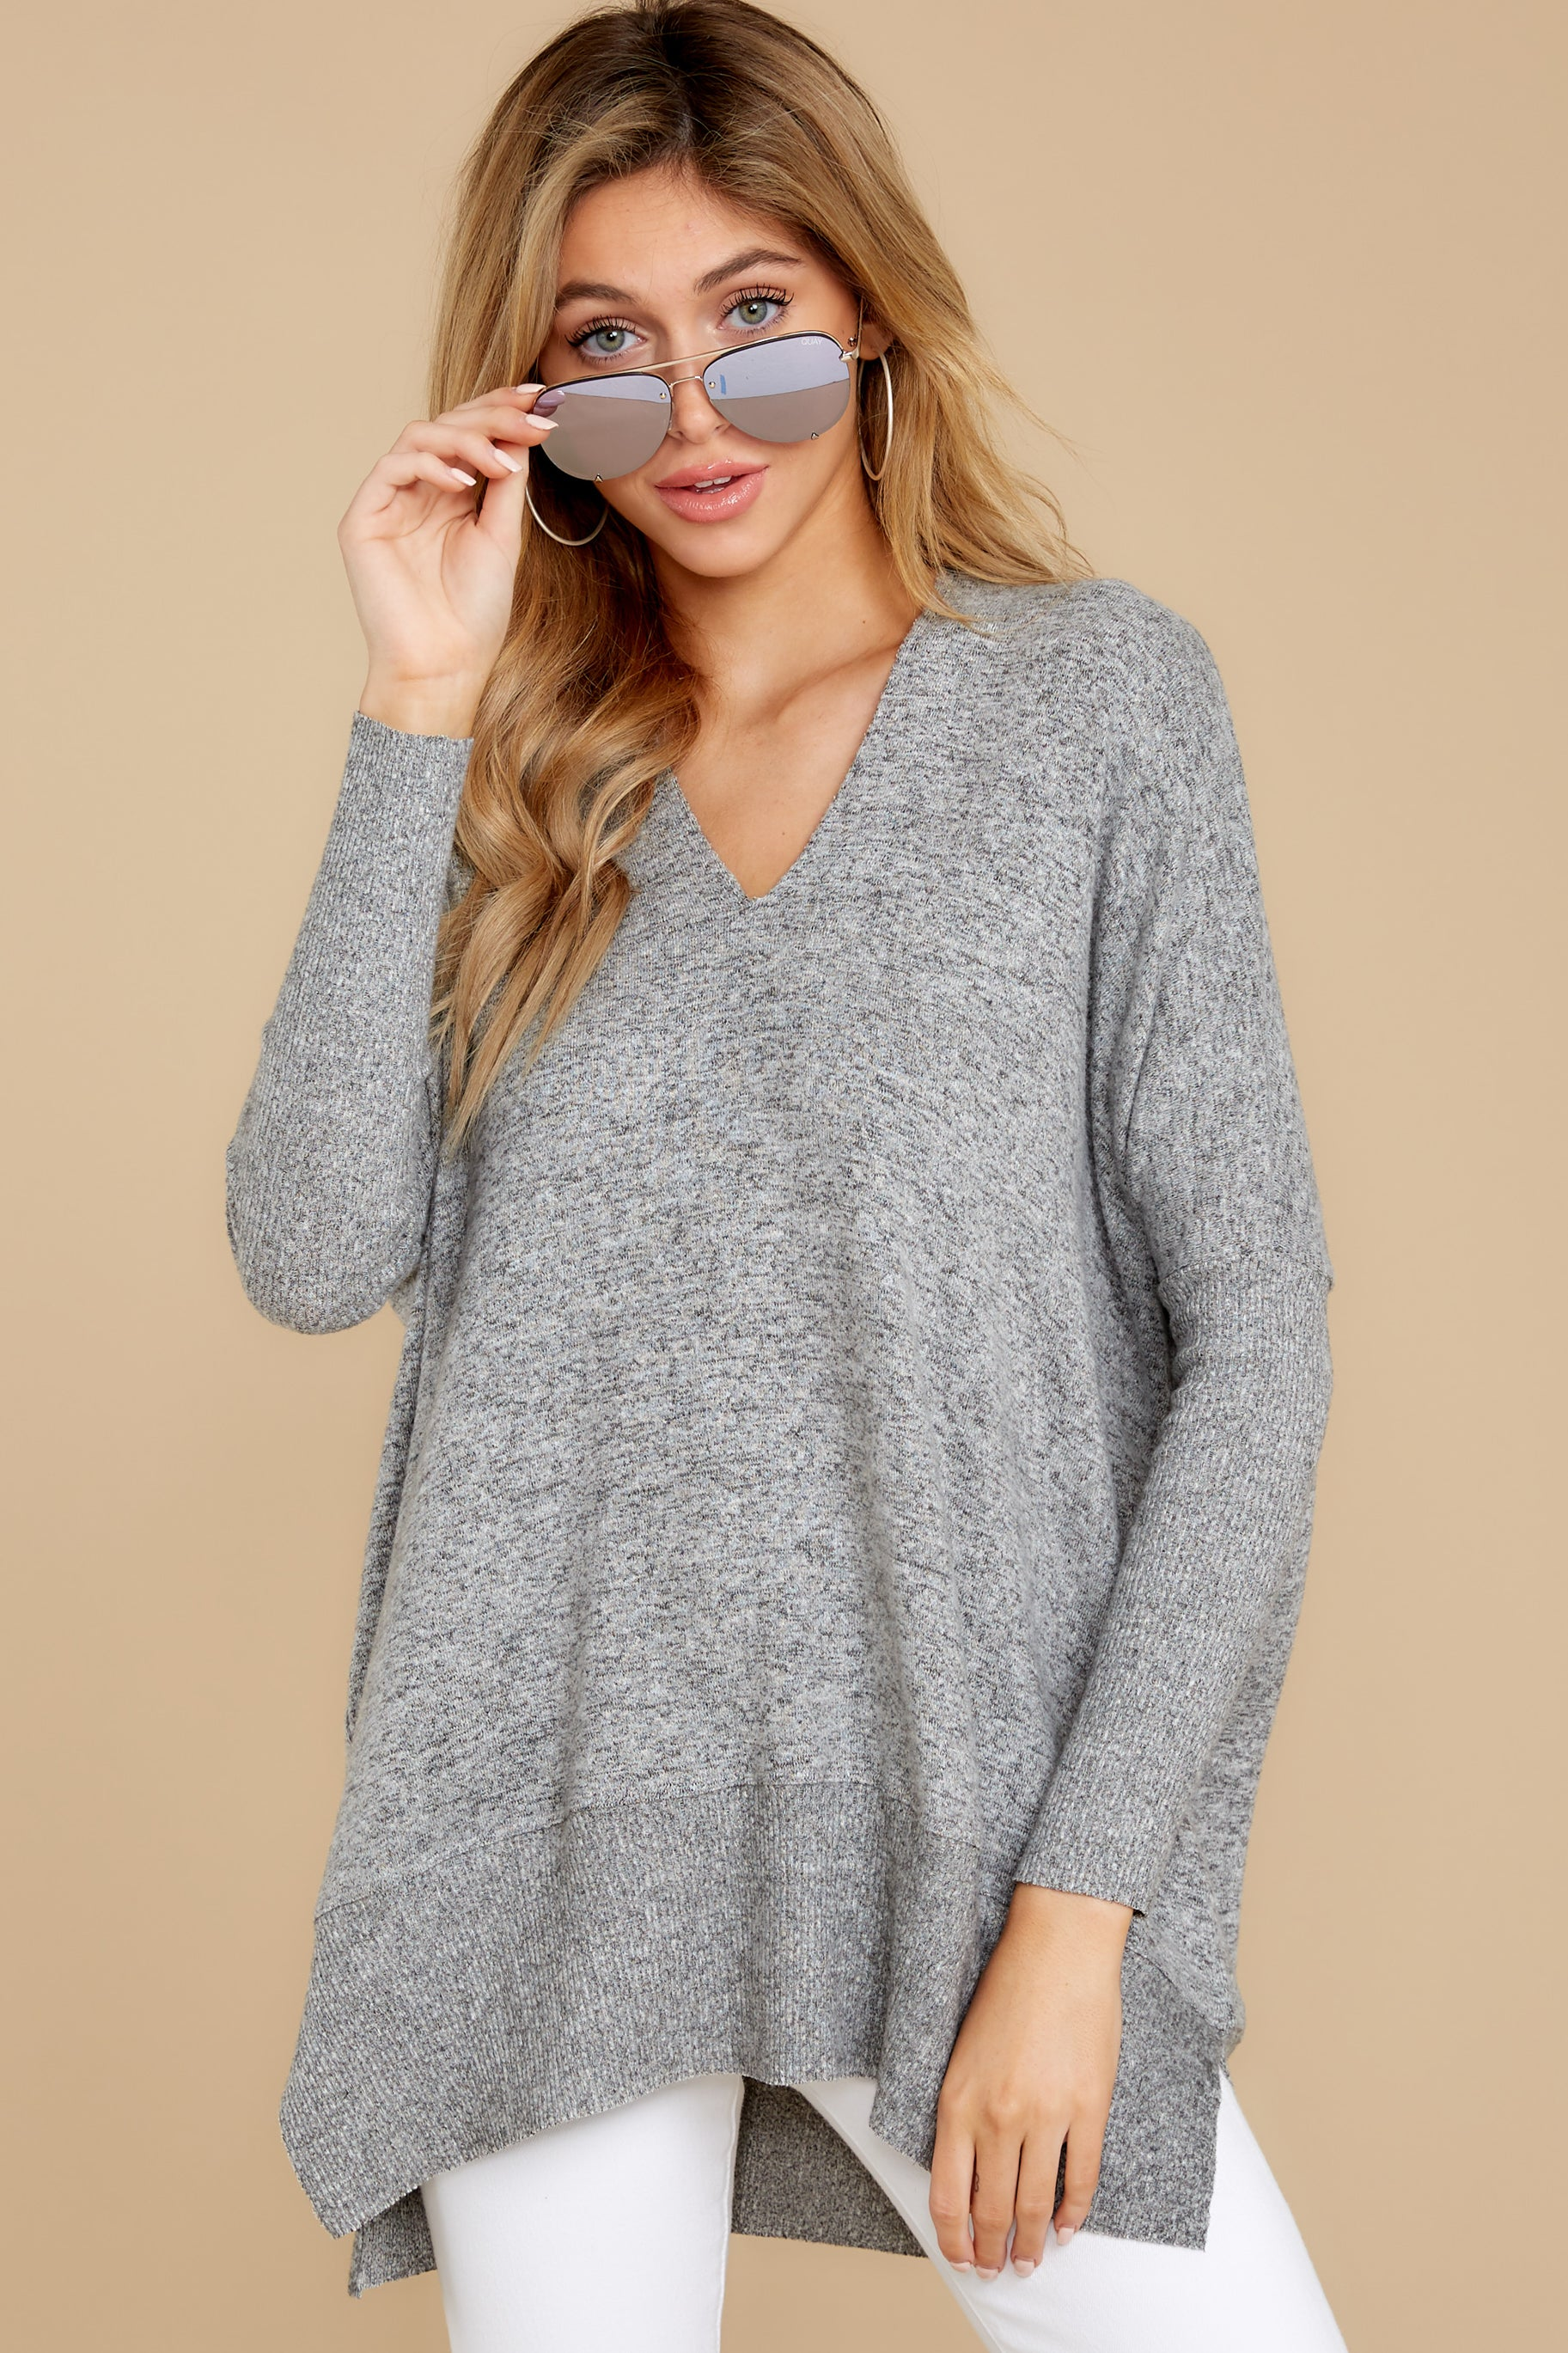 4 Any Which Way Heather Grey Sweater at reddressboutique.com